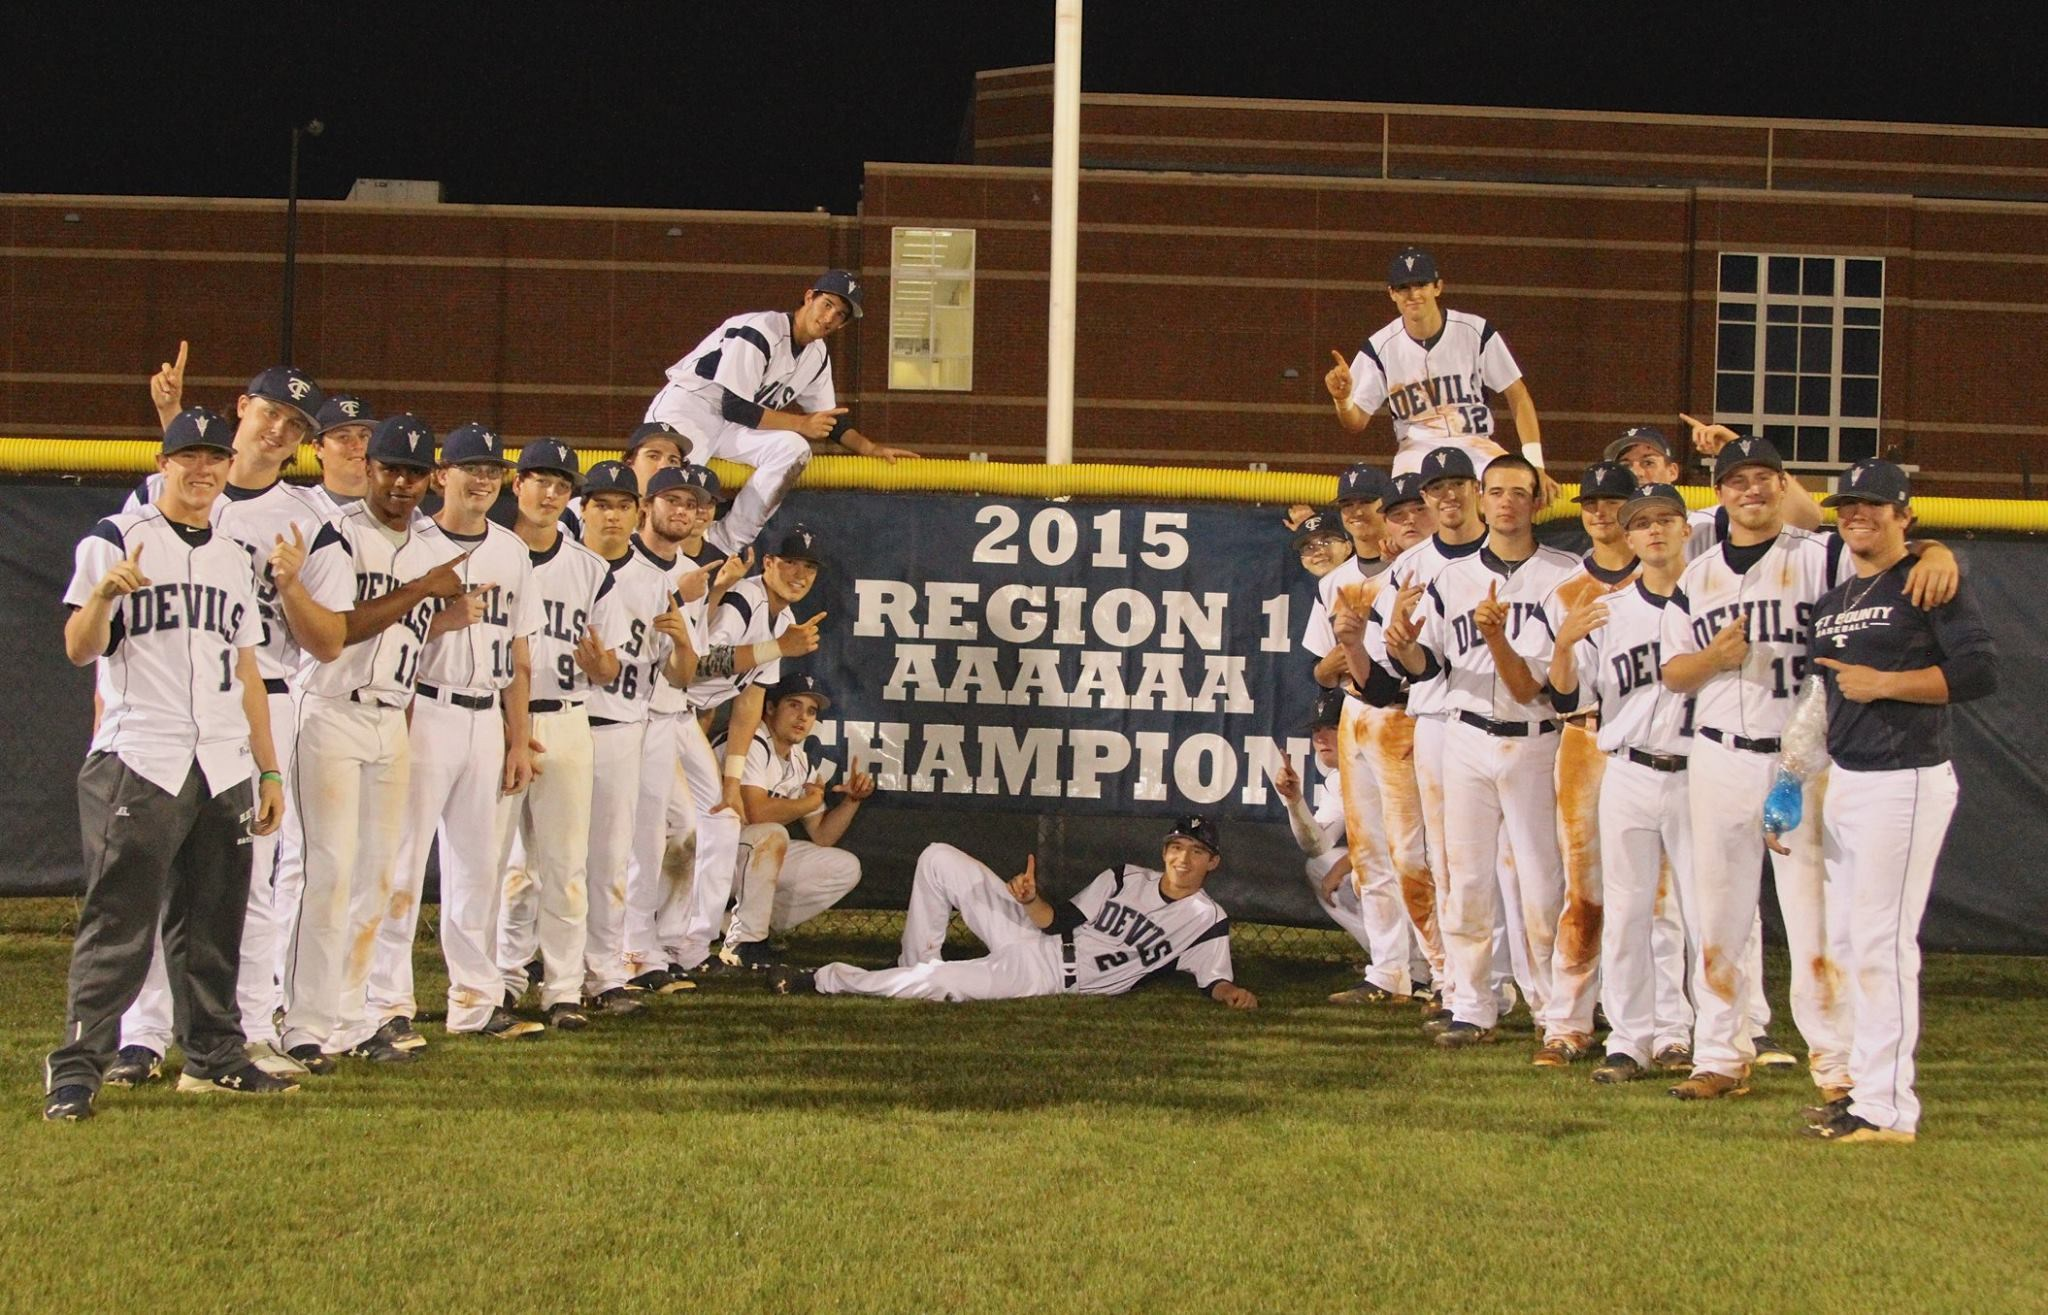 Photo of 2015 Region 1 AAAAAA Champions